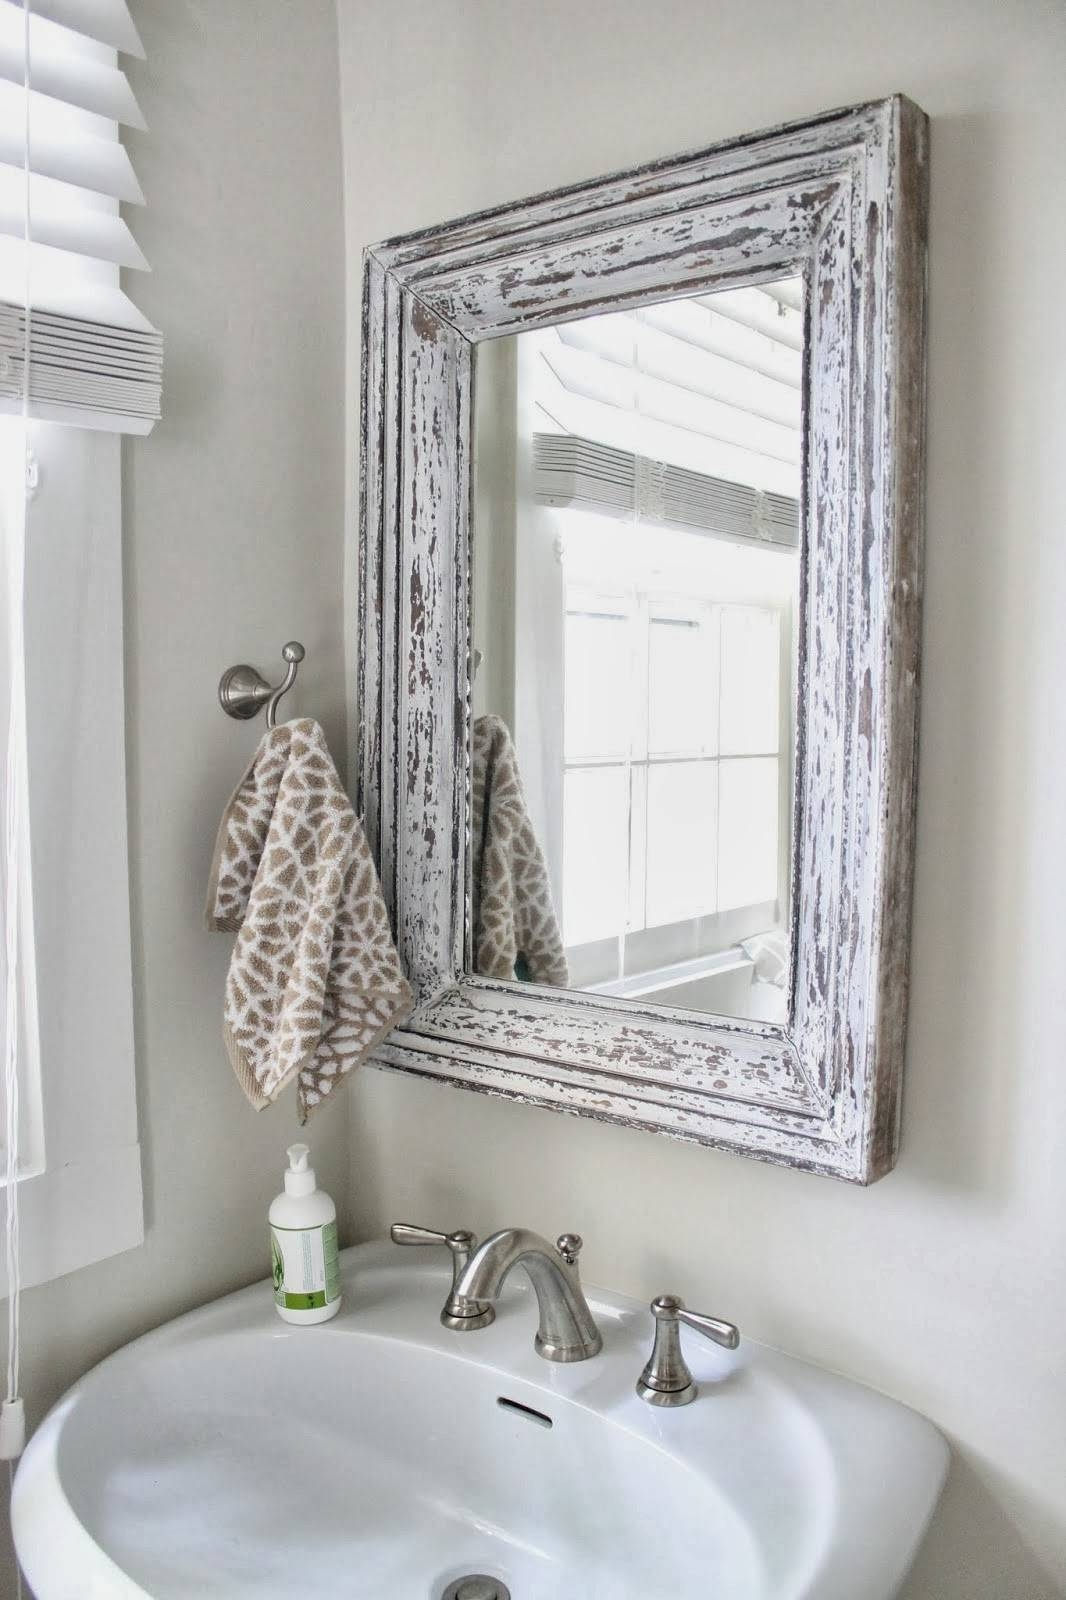 Silver Gilded Or White Shabby Chic Bathroom Hall Wall Small Mirror within White Large Shabby Chic Mirrors (Image 14 of 15)